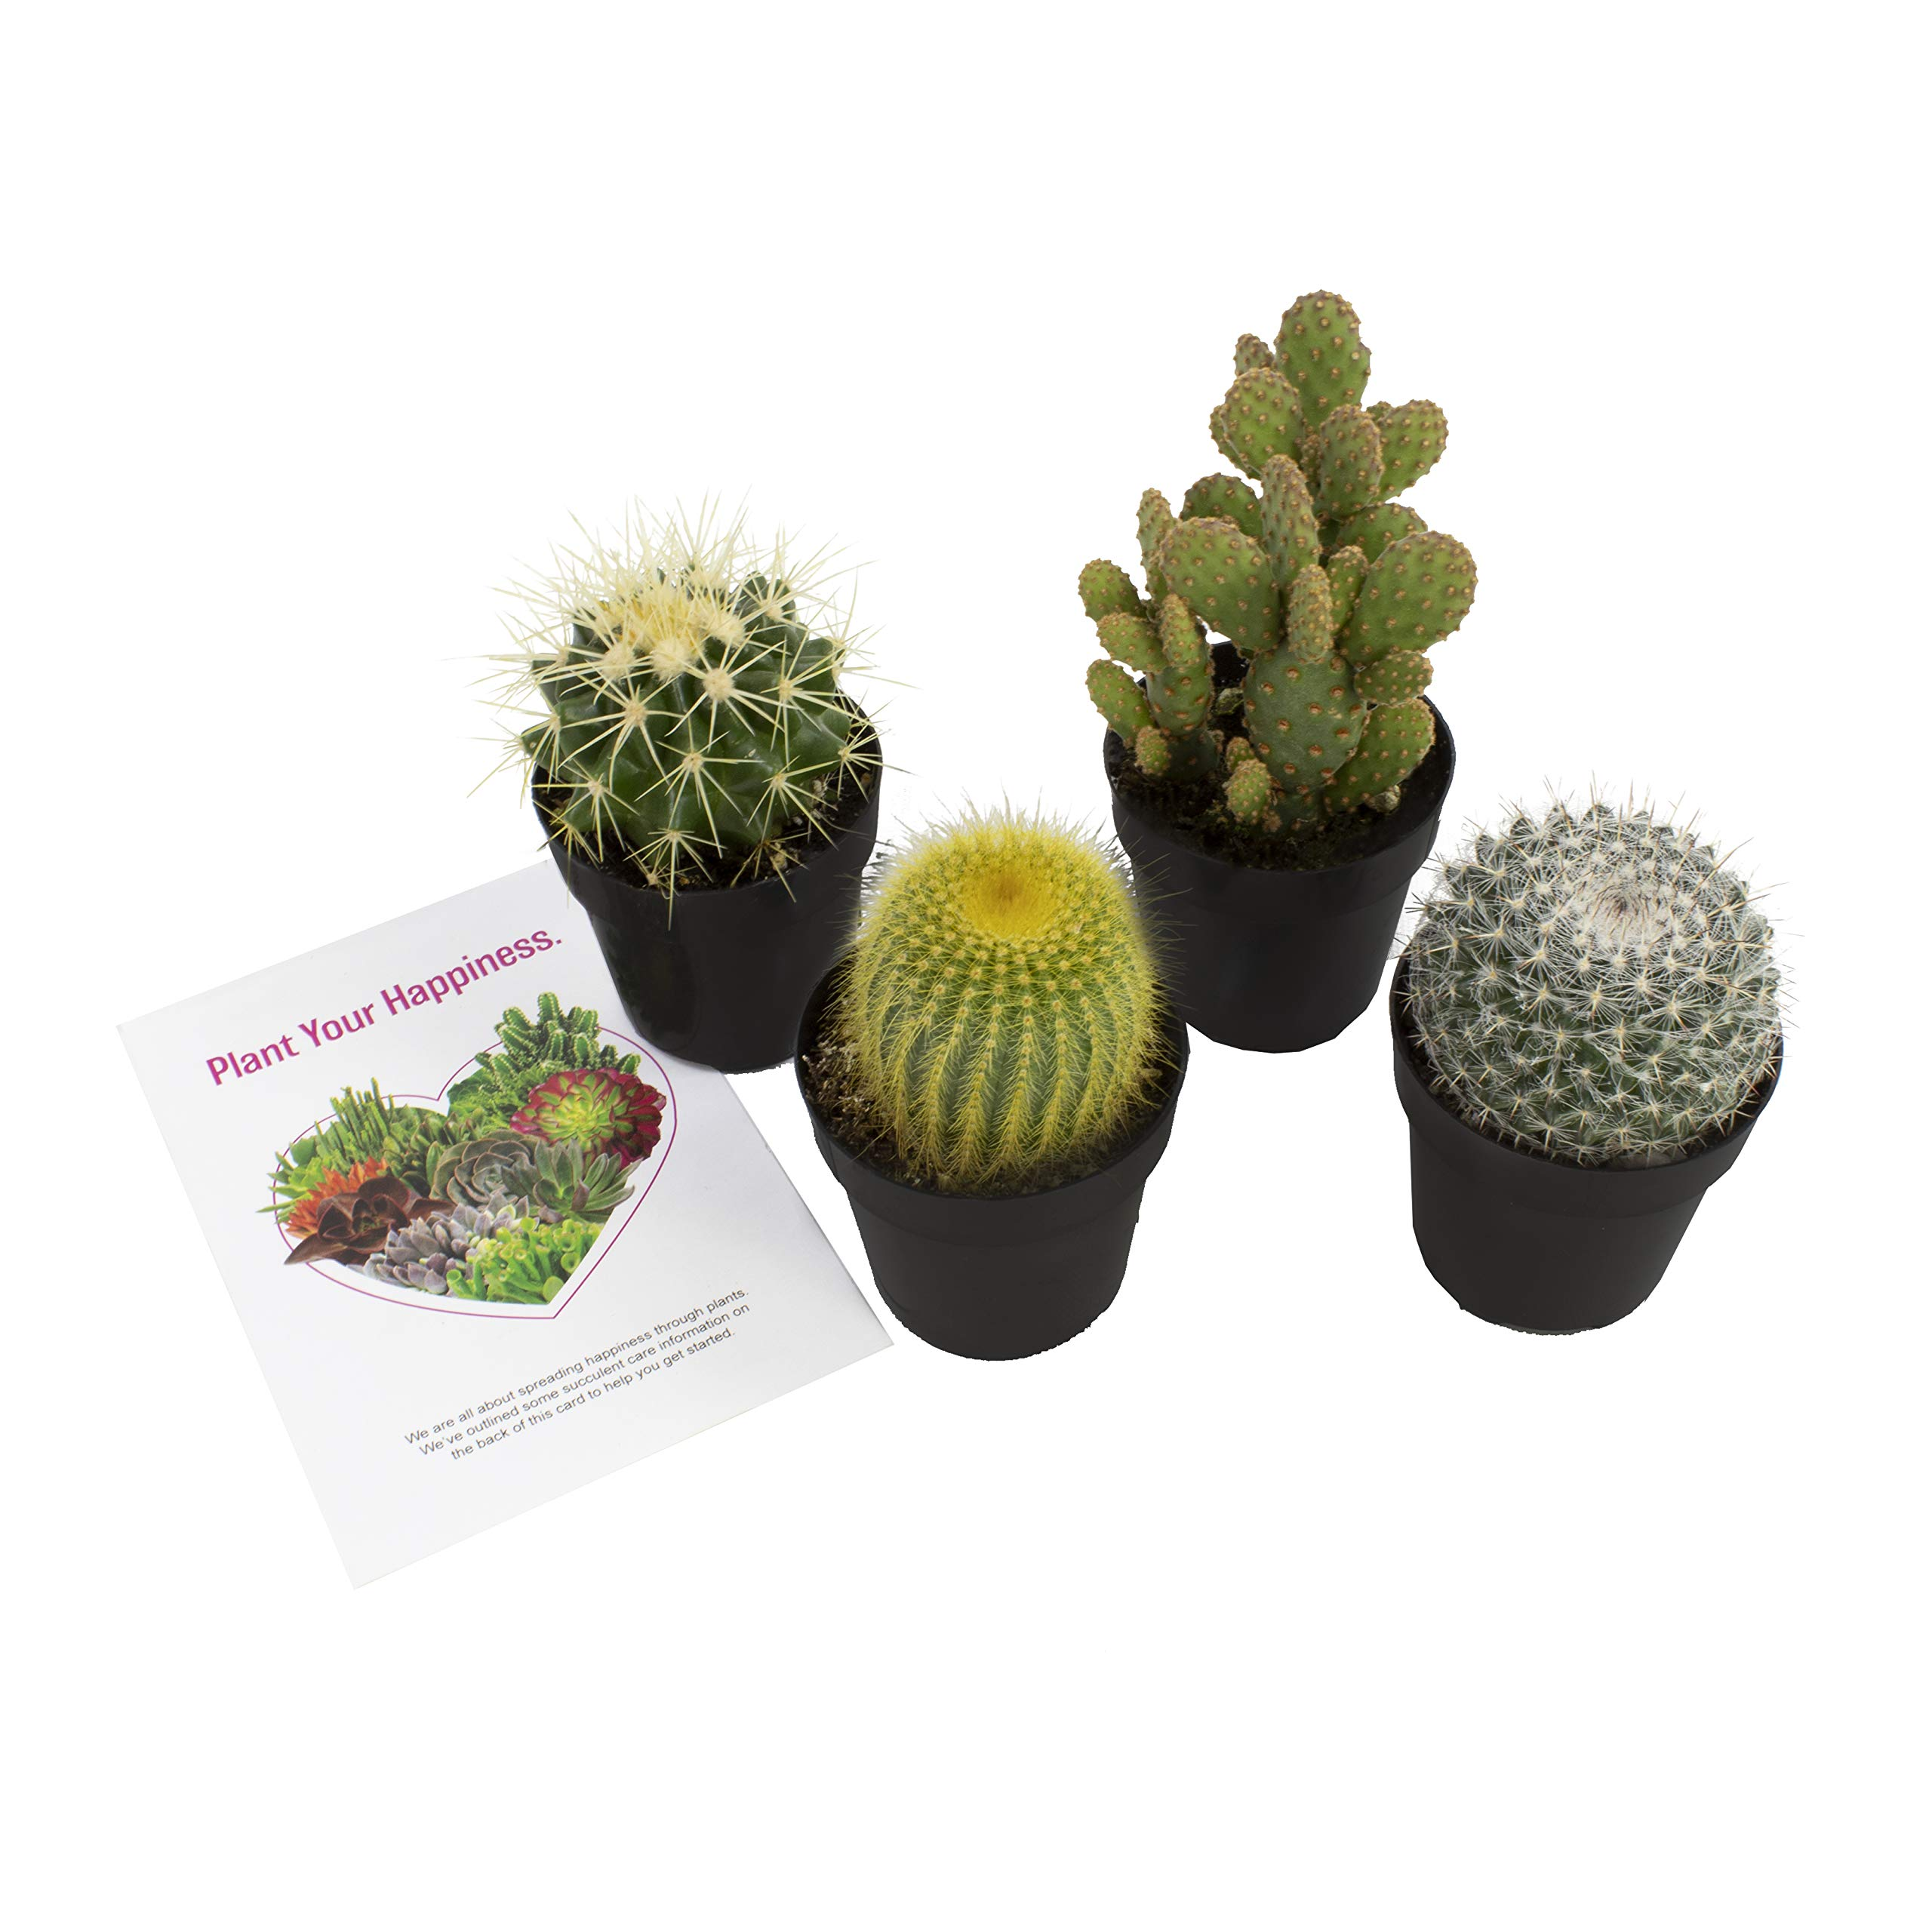 Altman Plants Assorted Live Cactus Collection mini for planters or gifts, 2.5'', 4 Pack by Altman Plants (Image #2)